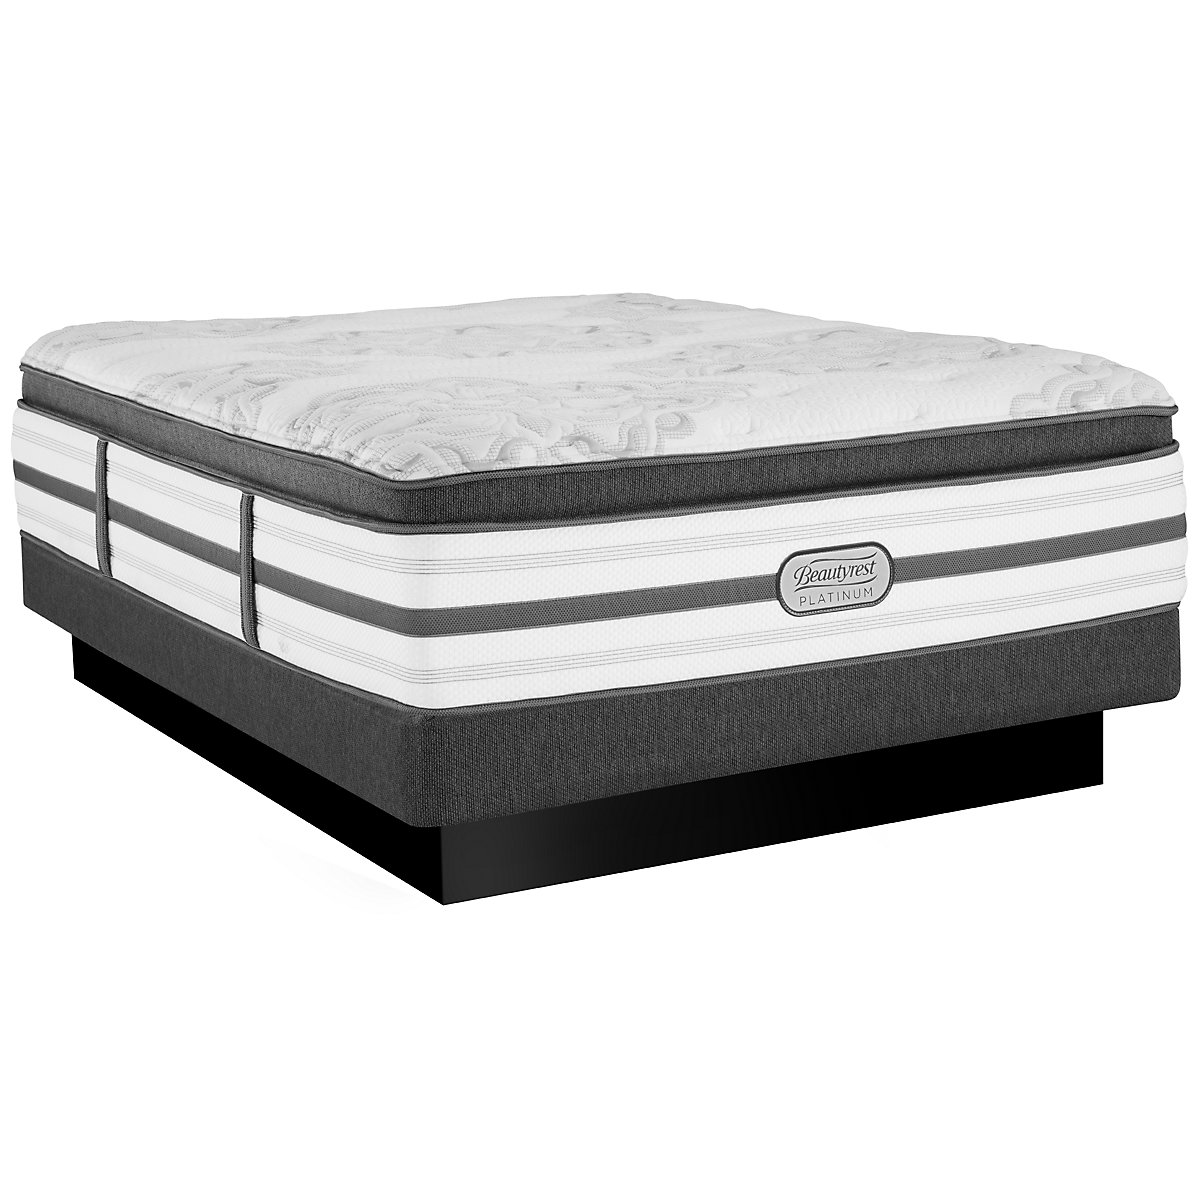 Beautyrest Platinum Katherine Luxury Firm Innerspring Pillow Top Low-Profile Mattress Set